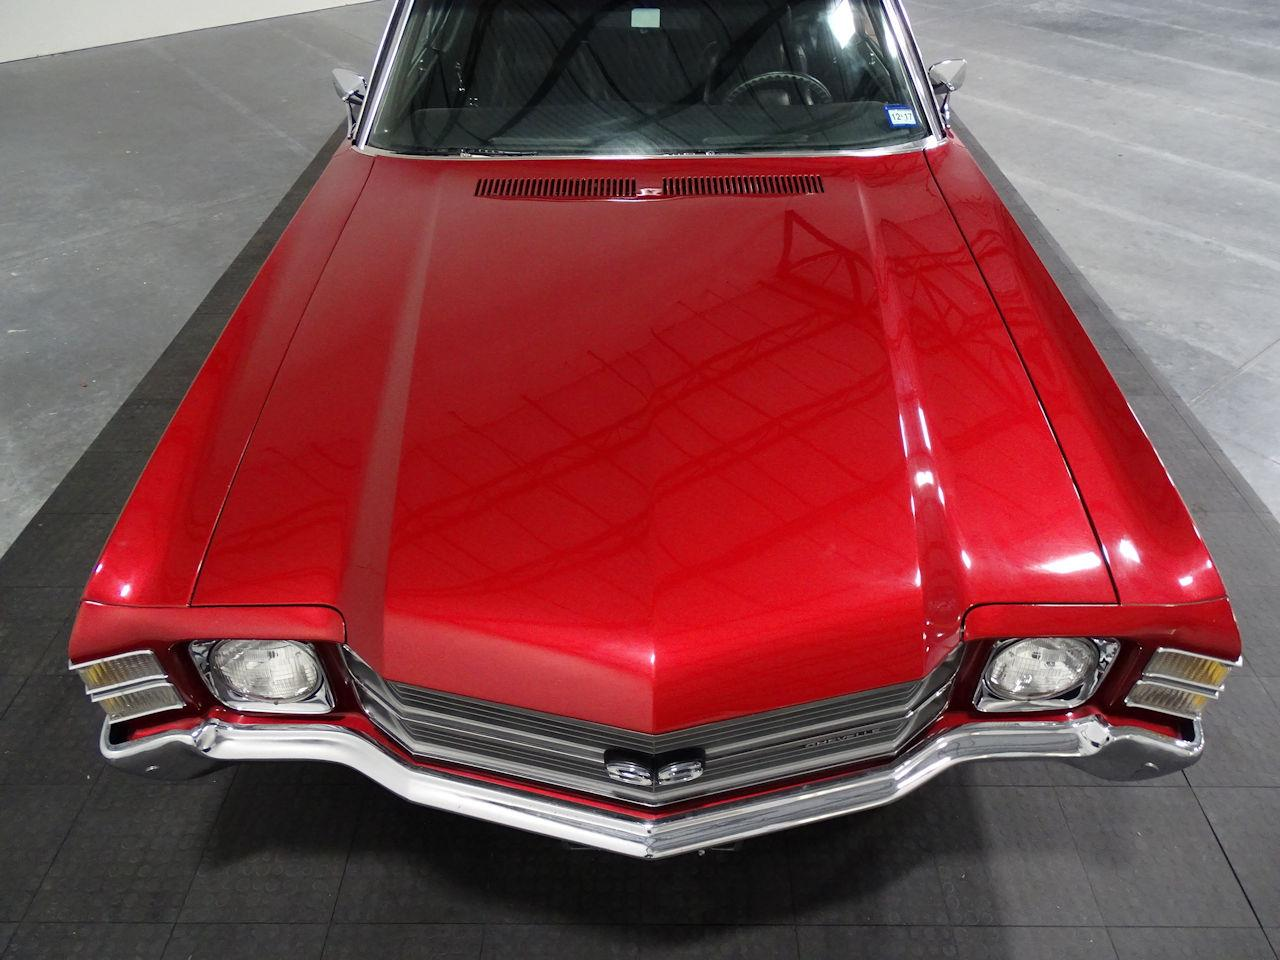 Large Picture of '71 Chevelle located in Houston Texas - $61,000.00 Offered by Gateway Classic Cars - Houston - LFRJ